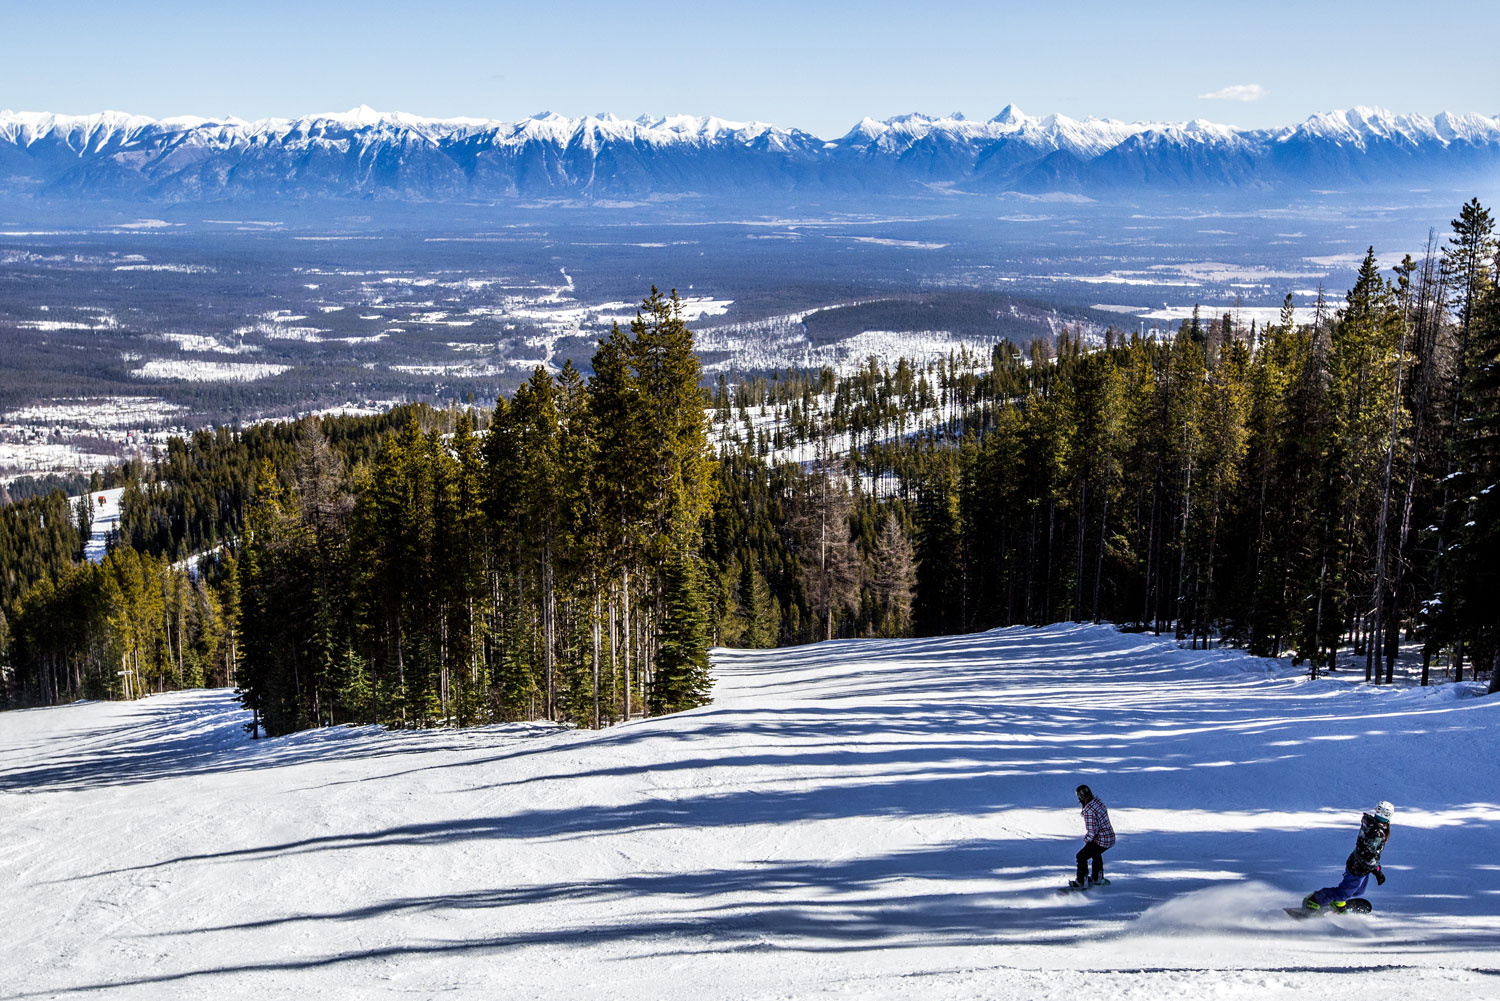 Kimberley Alpine Resort receives more sun than any other resort in British Columbia.